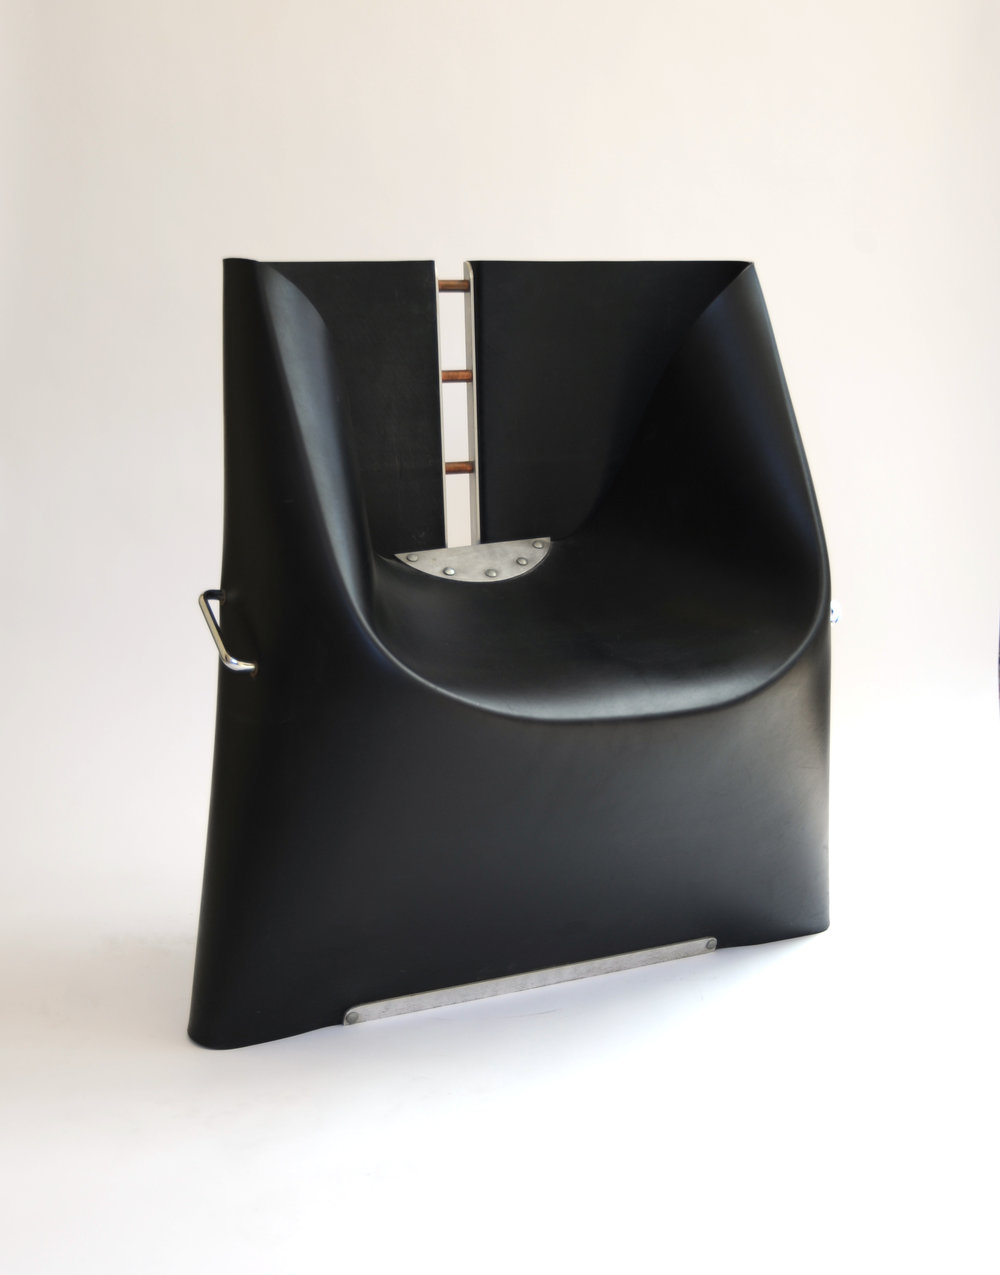 Black Rubber Chair Henner Kuckuck Unknown Origin Unknown Date Rubber & Metal Seat Back H 26 in, W 18 in, D 13 in, (Seat H: 11 in adjustable) LIST PRICE: $2,800 DESIGNER DISCOUNT PRICE: $ LEAD TIME: 3-5 Days Shipping & Handling QUANTITY IN STOCK: 1 ONLINE PLATFORMS: kM Web, Artsy